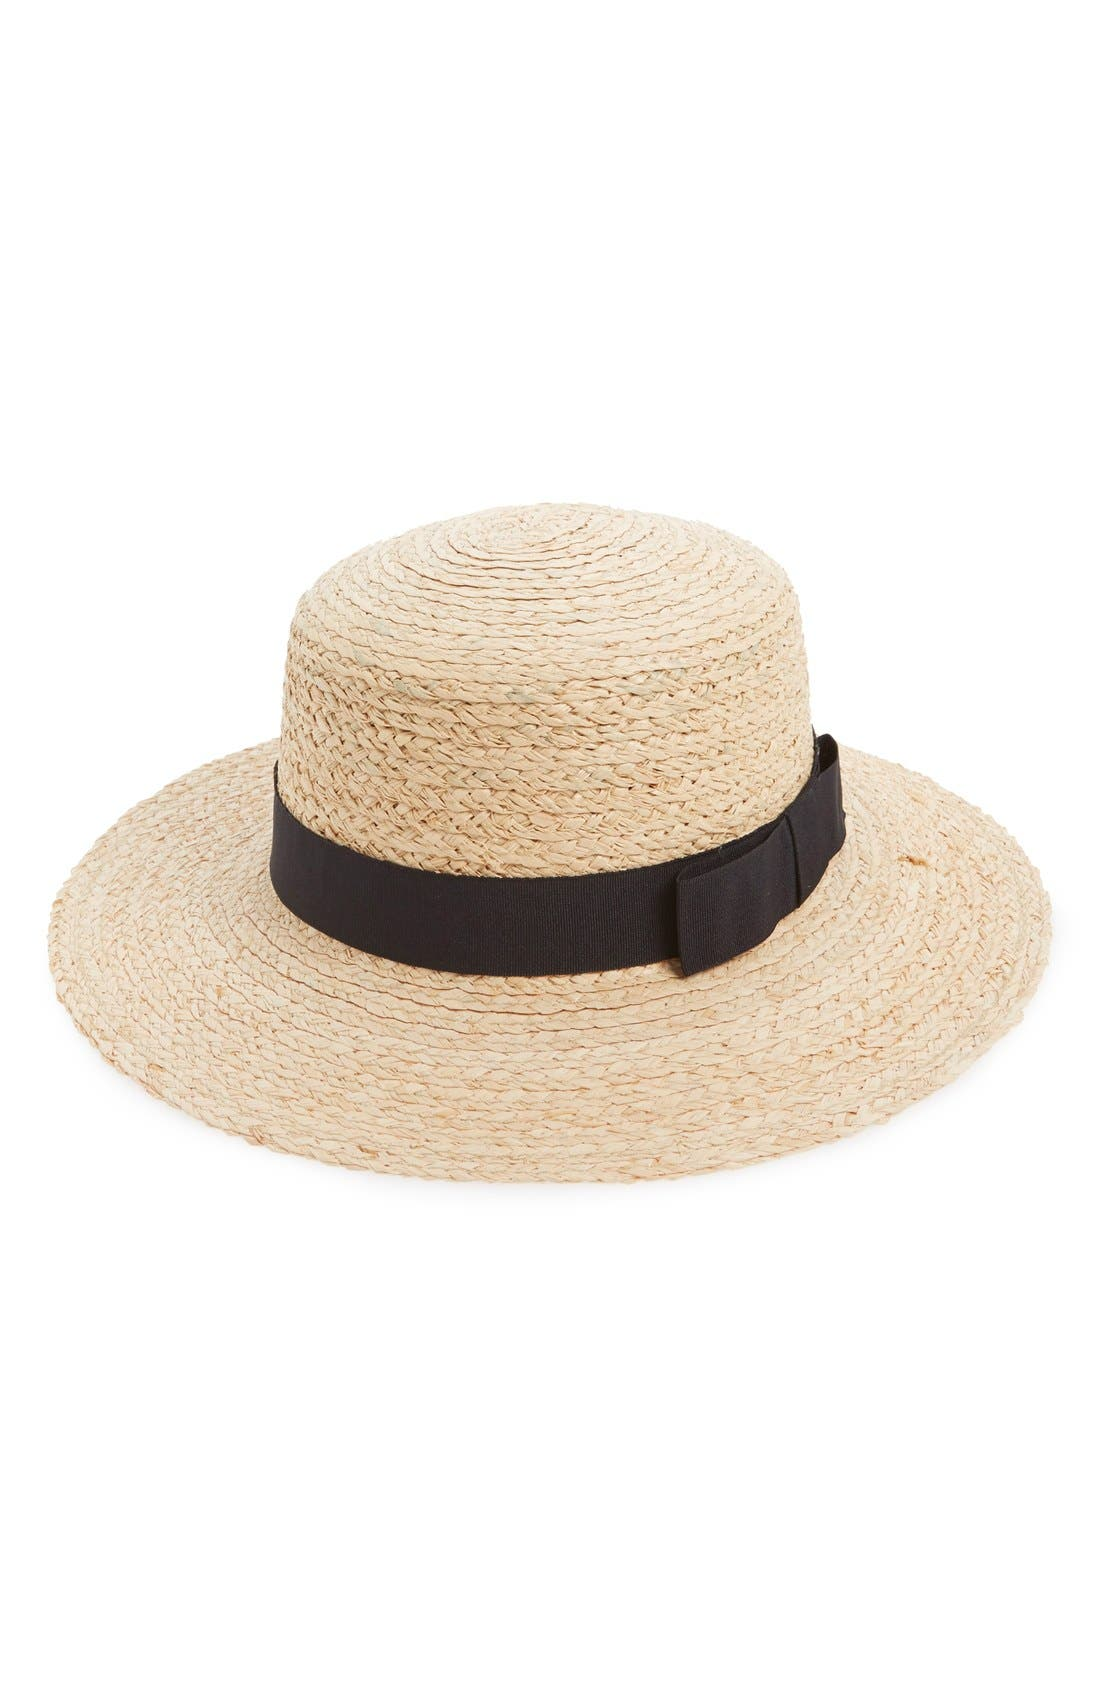 Alternate Image 1 Selected - Sole Society Floppy Straw Hat